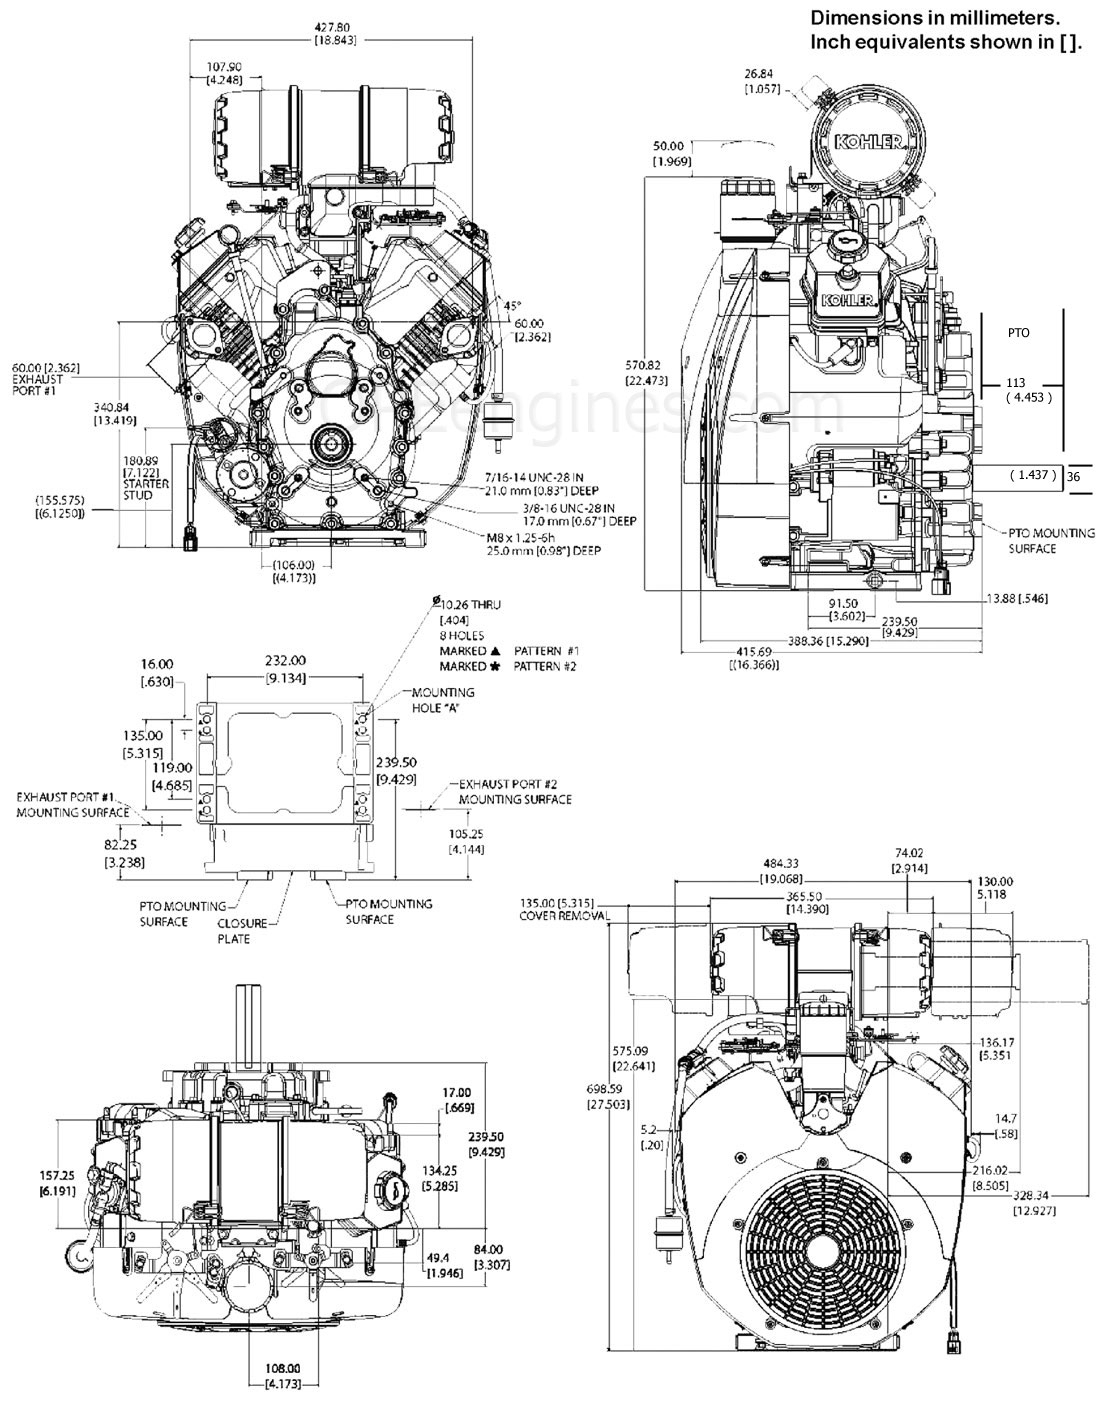 25 Hp Kohler Engine Carburetor Diagram